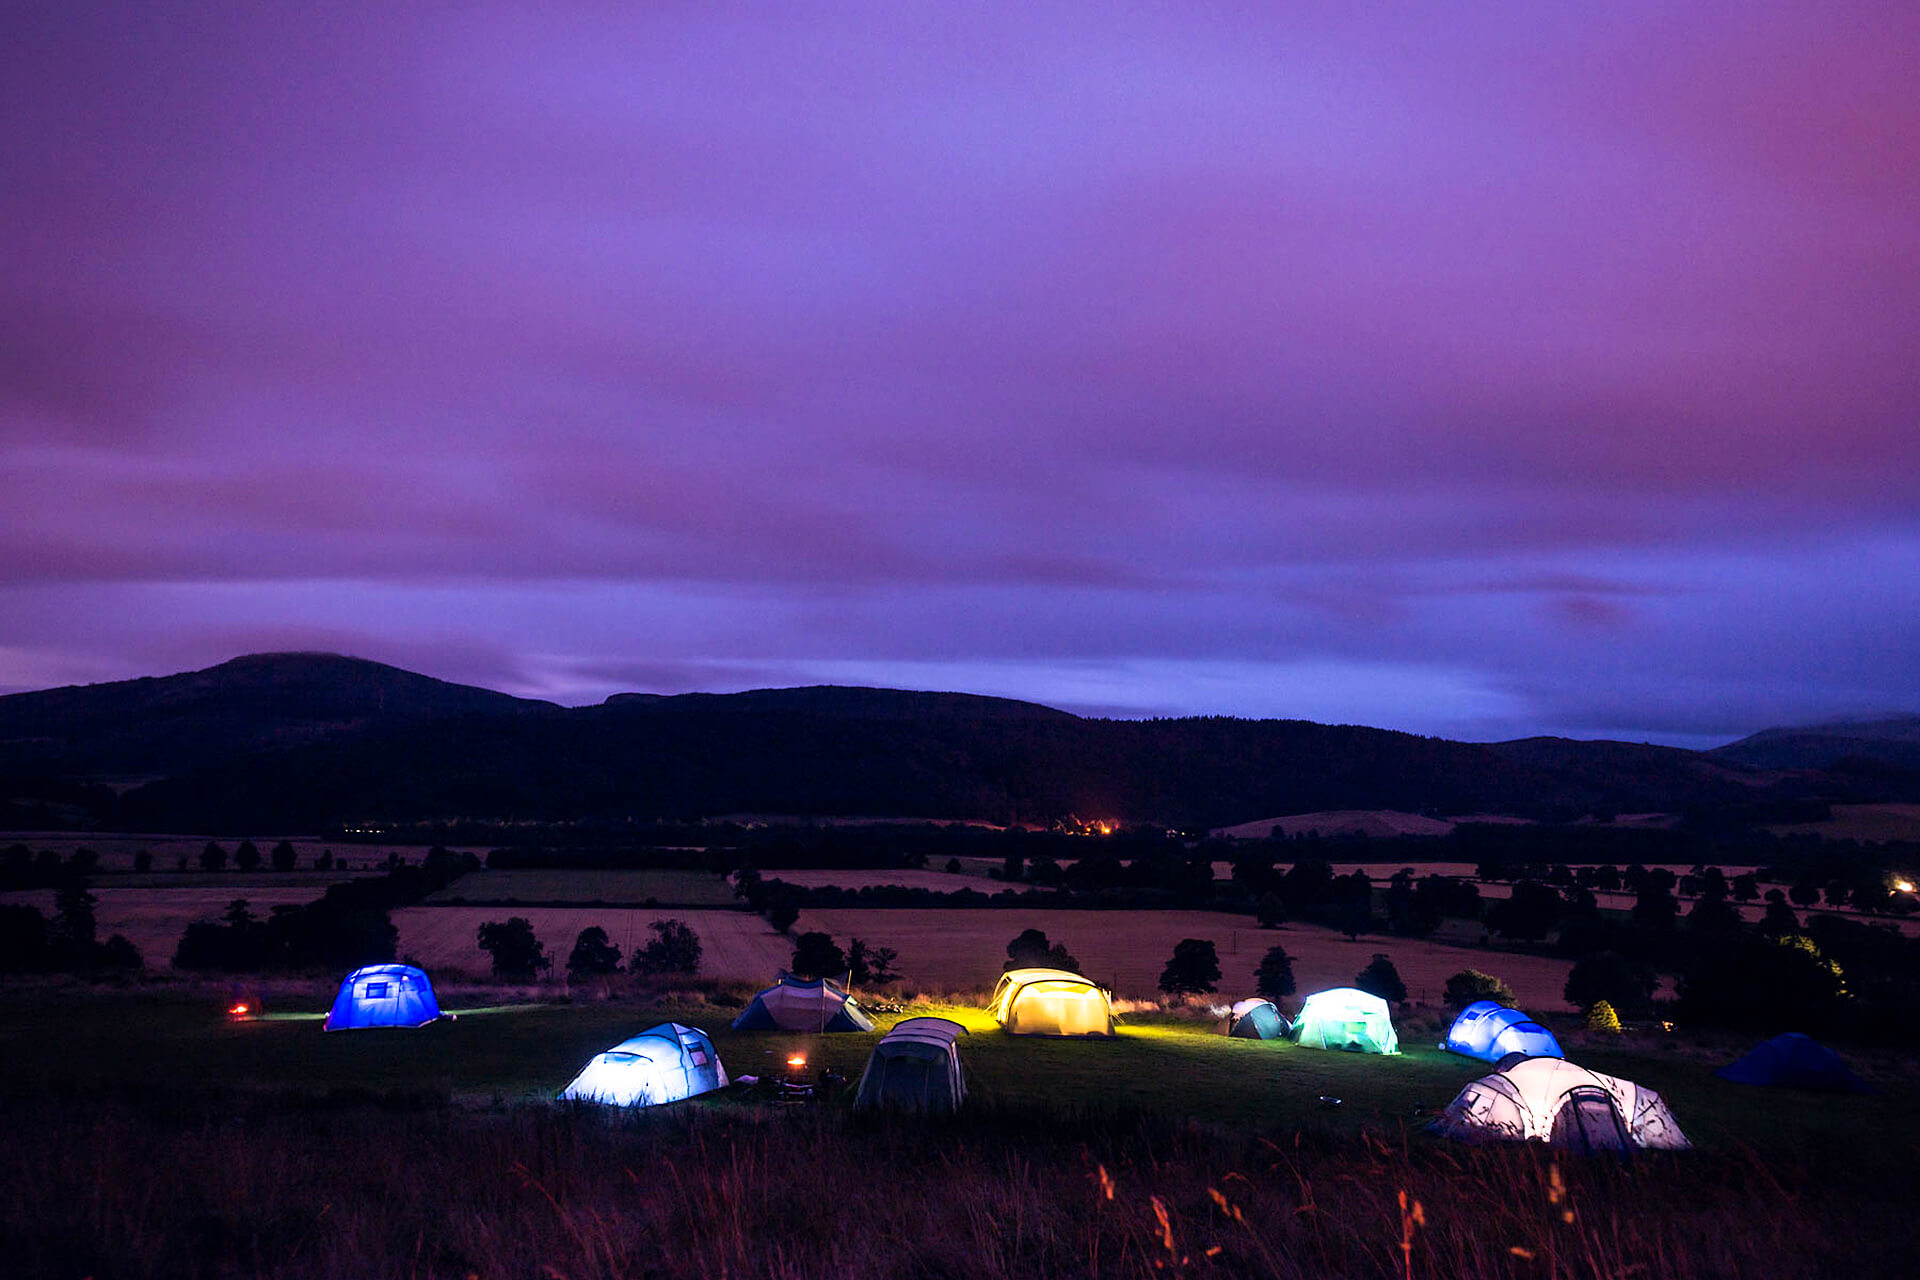 Camping under the stars in Comrie Croft, Perthshire